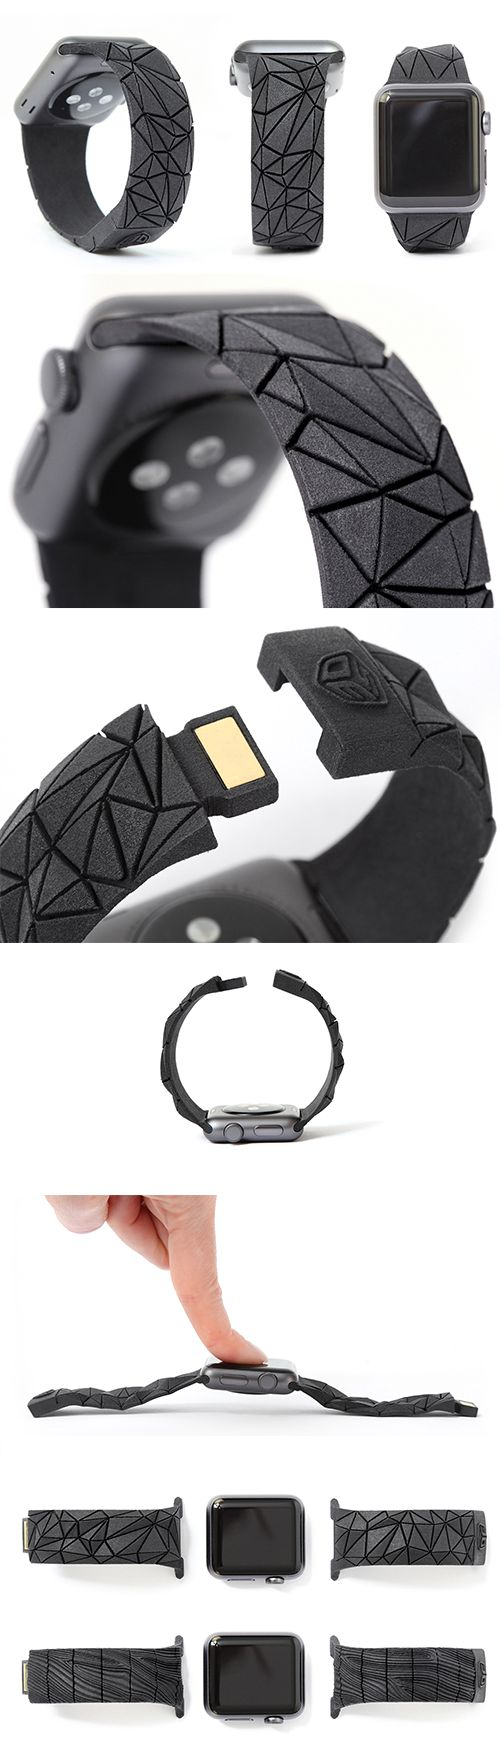 3D Printed Flex Bands for Apple Watch by Maria Cichy